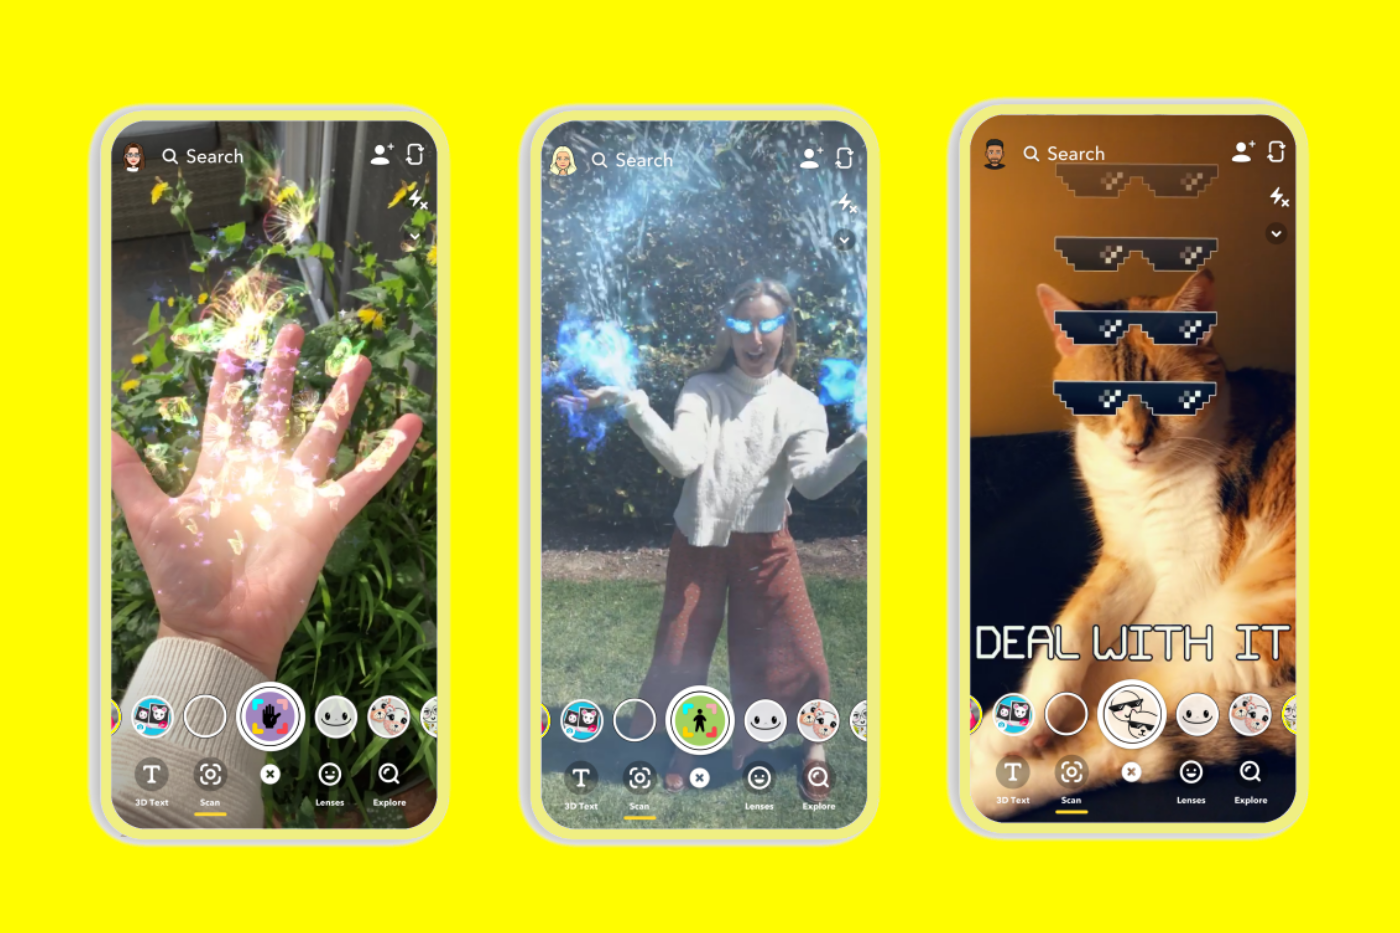 Snap Partner Summit Launches New AR Updates for Snapchat 1 snap partner summit new ar updates for snapchat